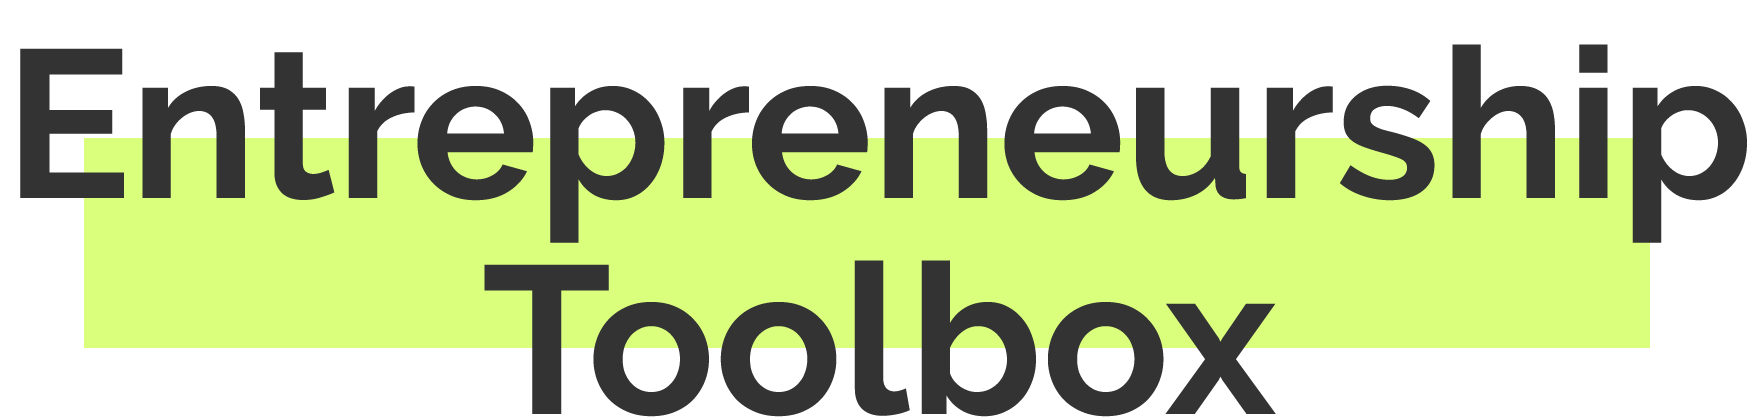 entrepreneurship_toolbox